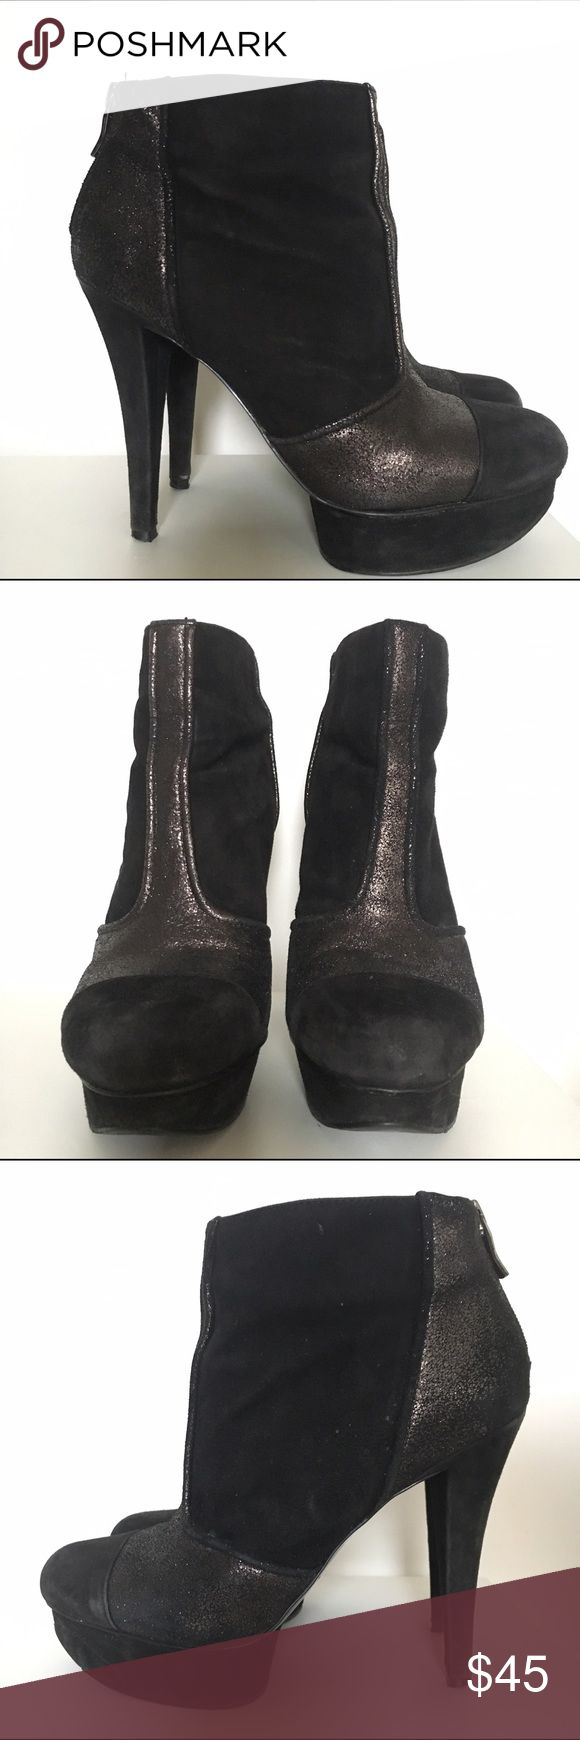 BCBGeneration Chazz Platform Ankle Boot Women's size 8.5, Chazz suede and leather ankle boot by BCBGeneration. Black/Gunmetal. Lightly worn, but in good condition. Perfect going out bootie. BCBGeneration Shoes Ankle Boots & Booties